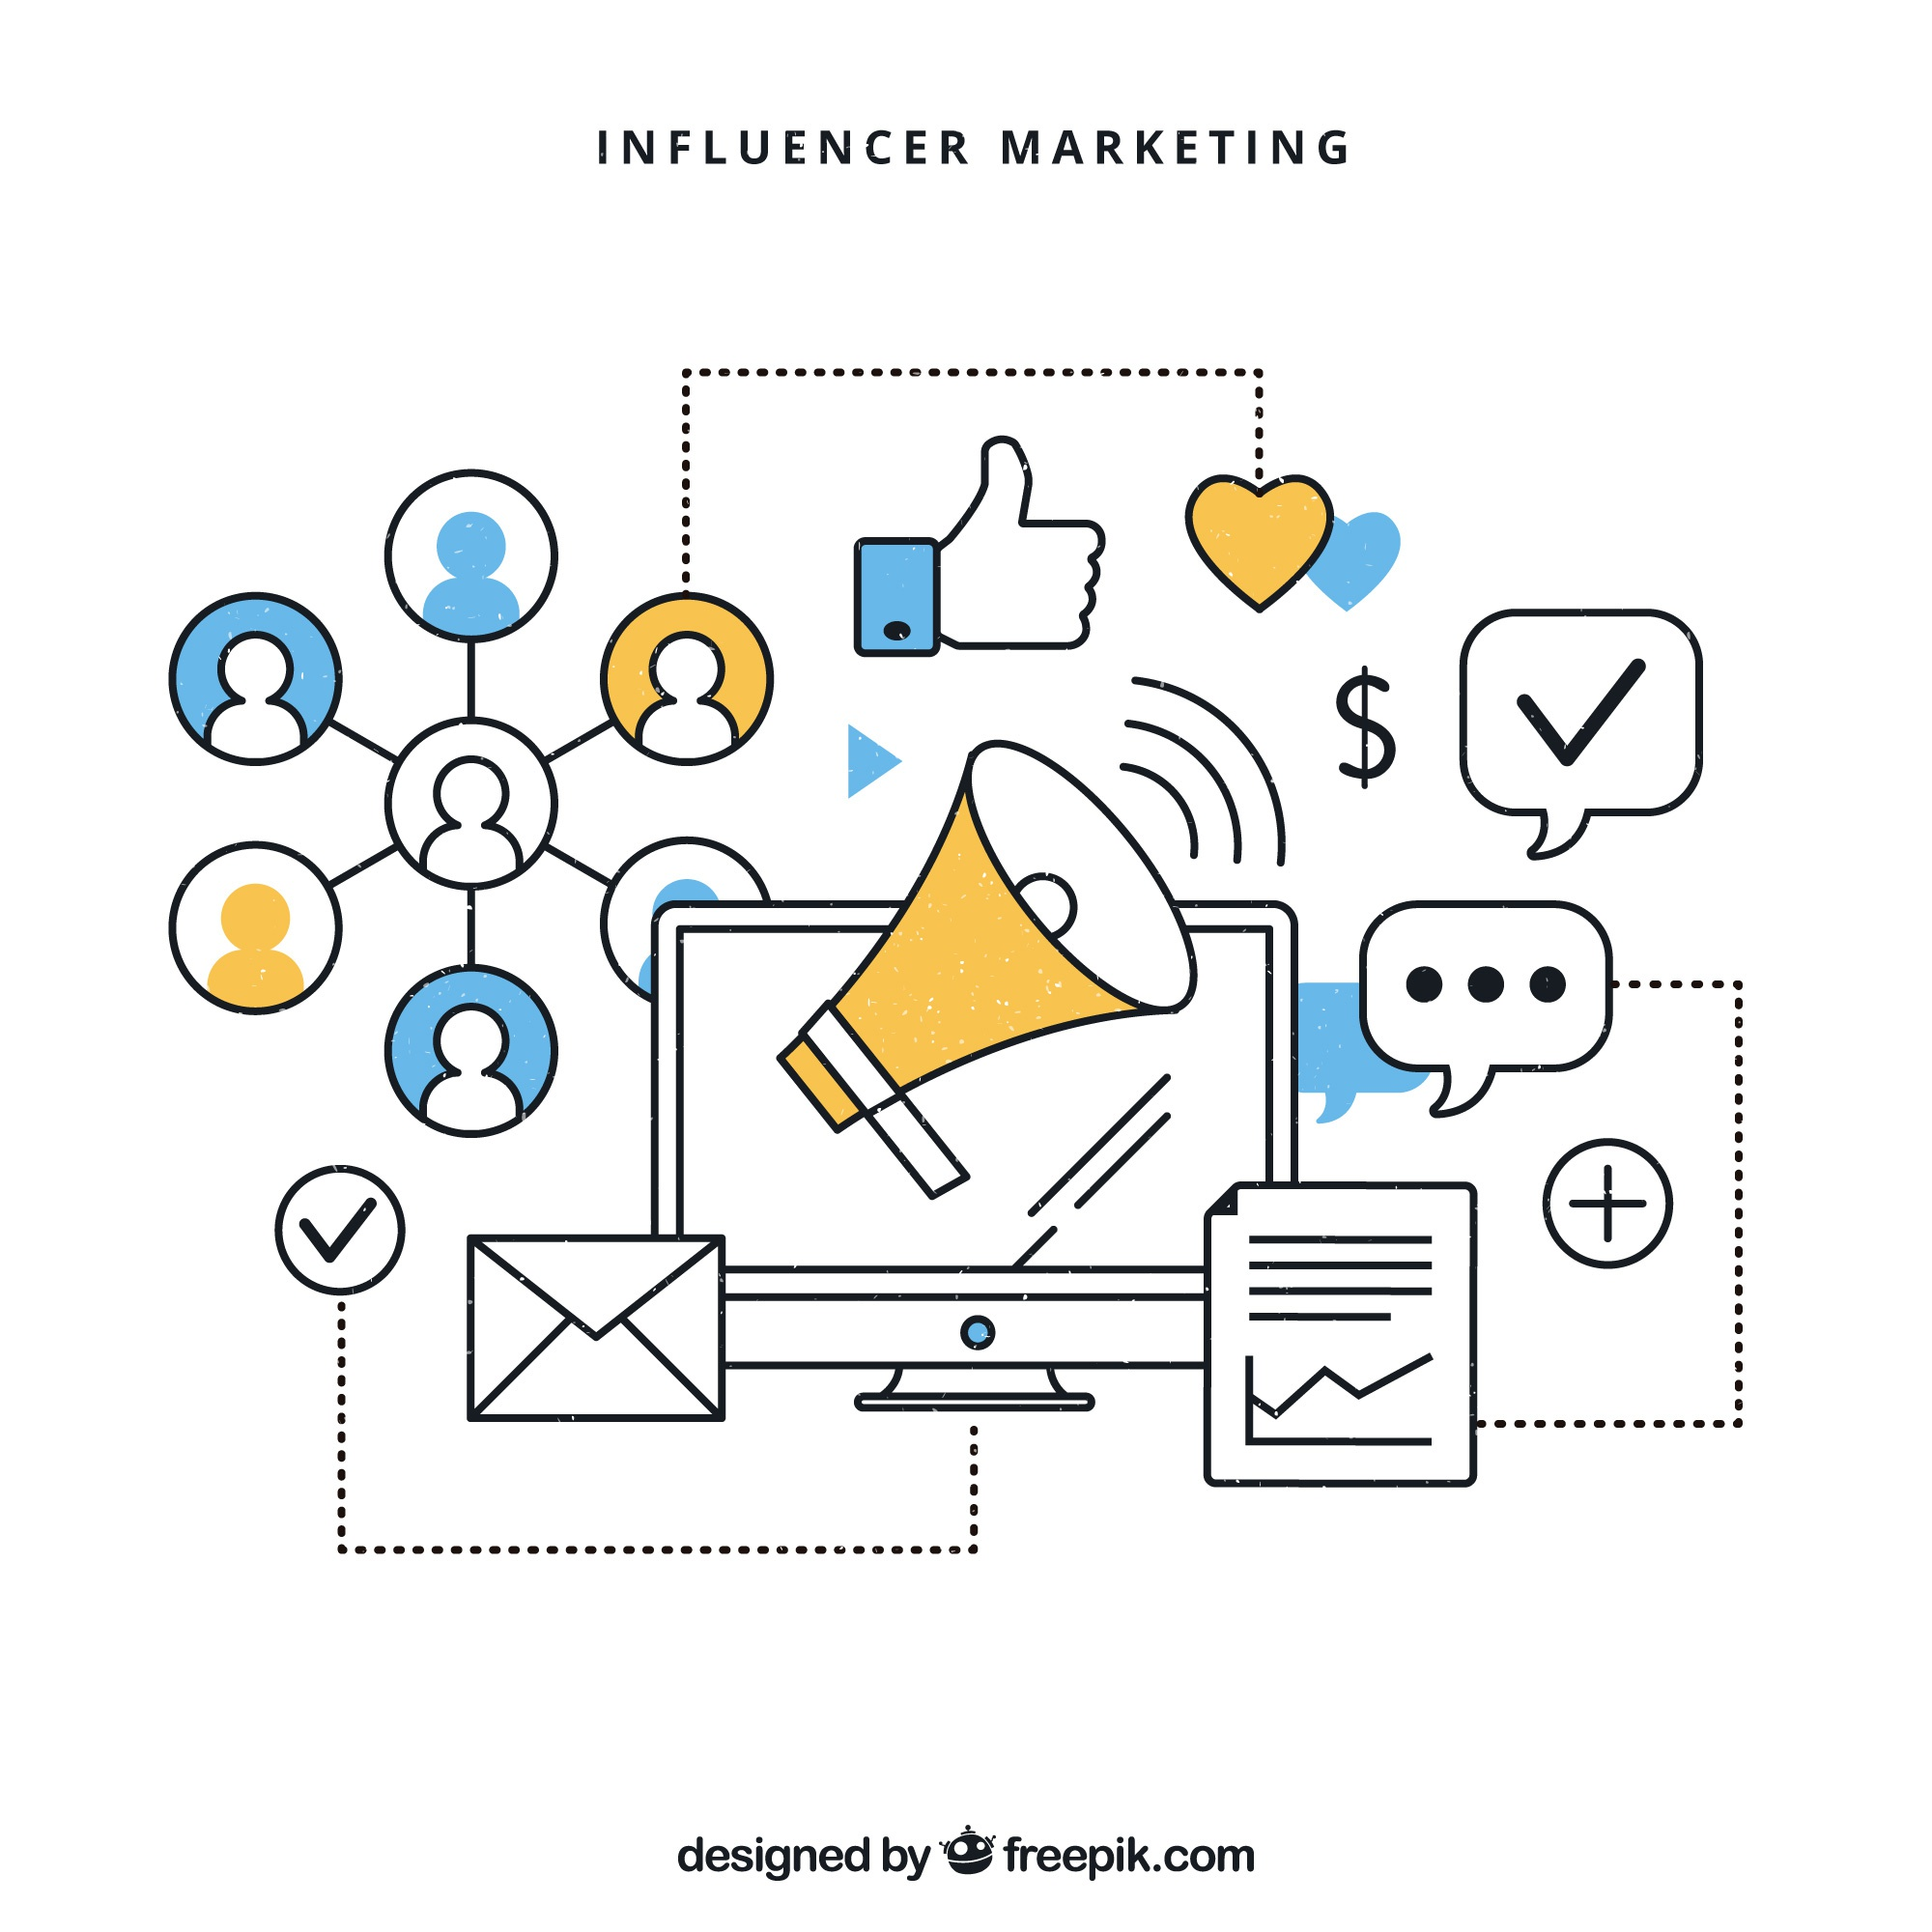 Vetor infográfico de marketing Influencer